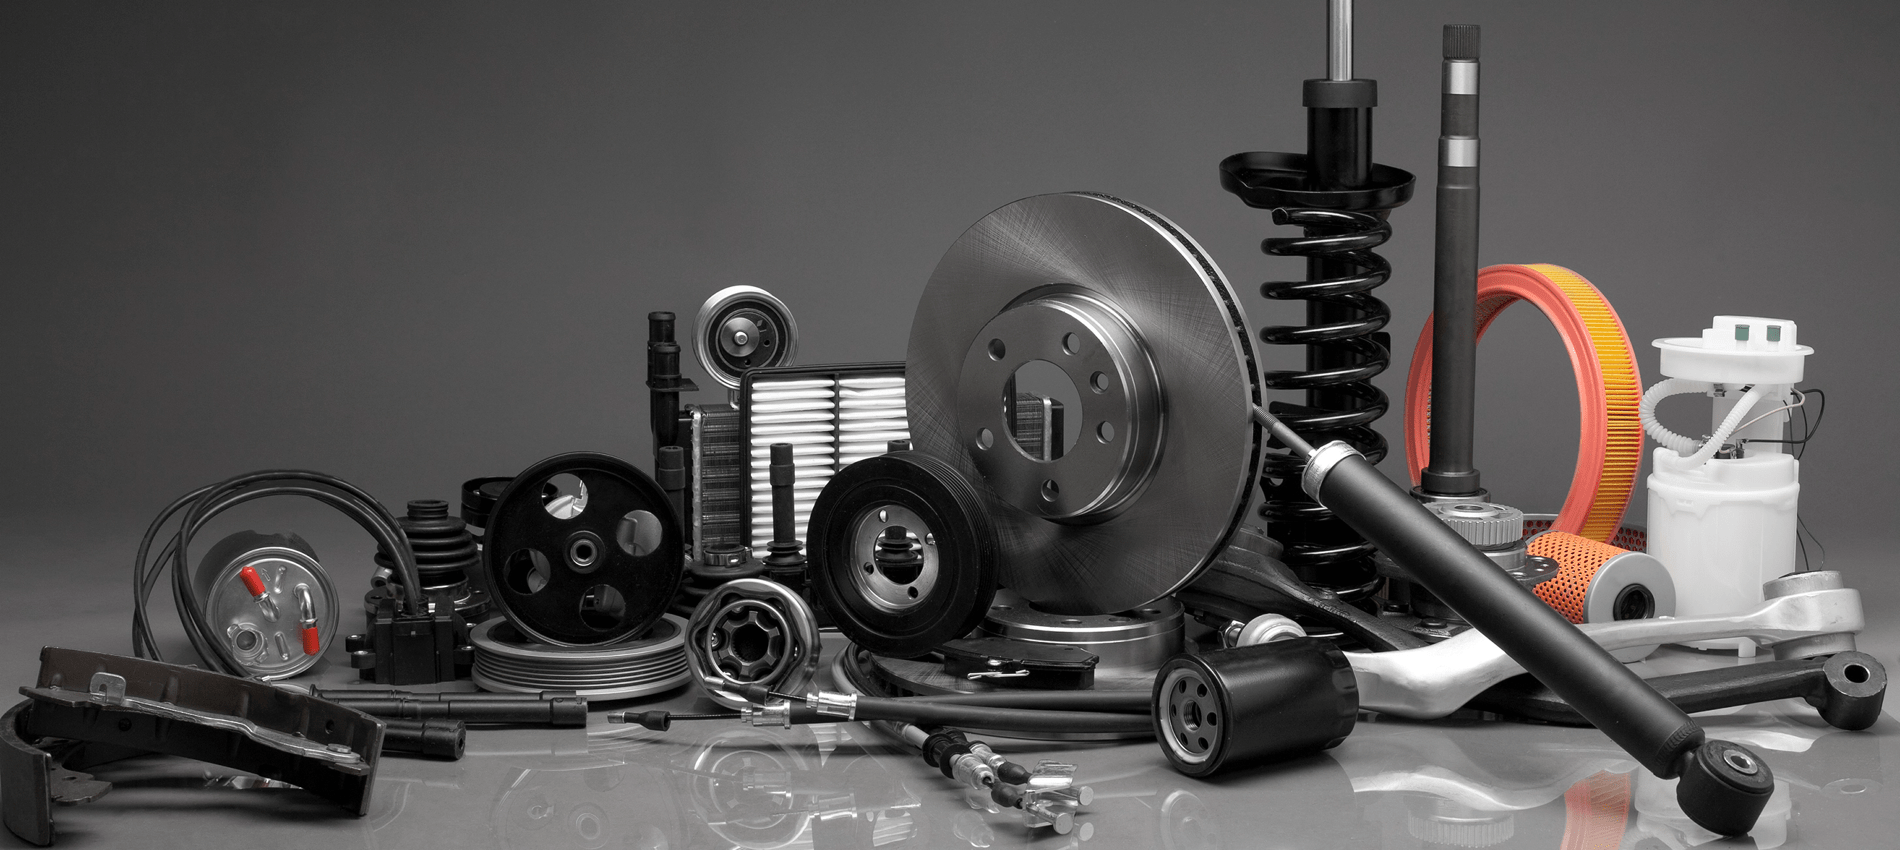 auto parts on a table